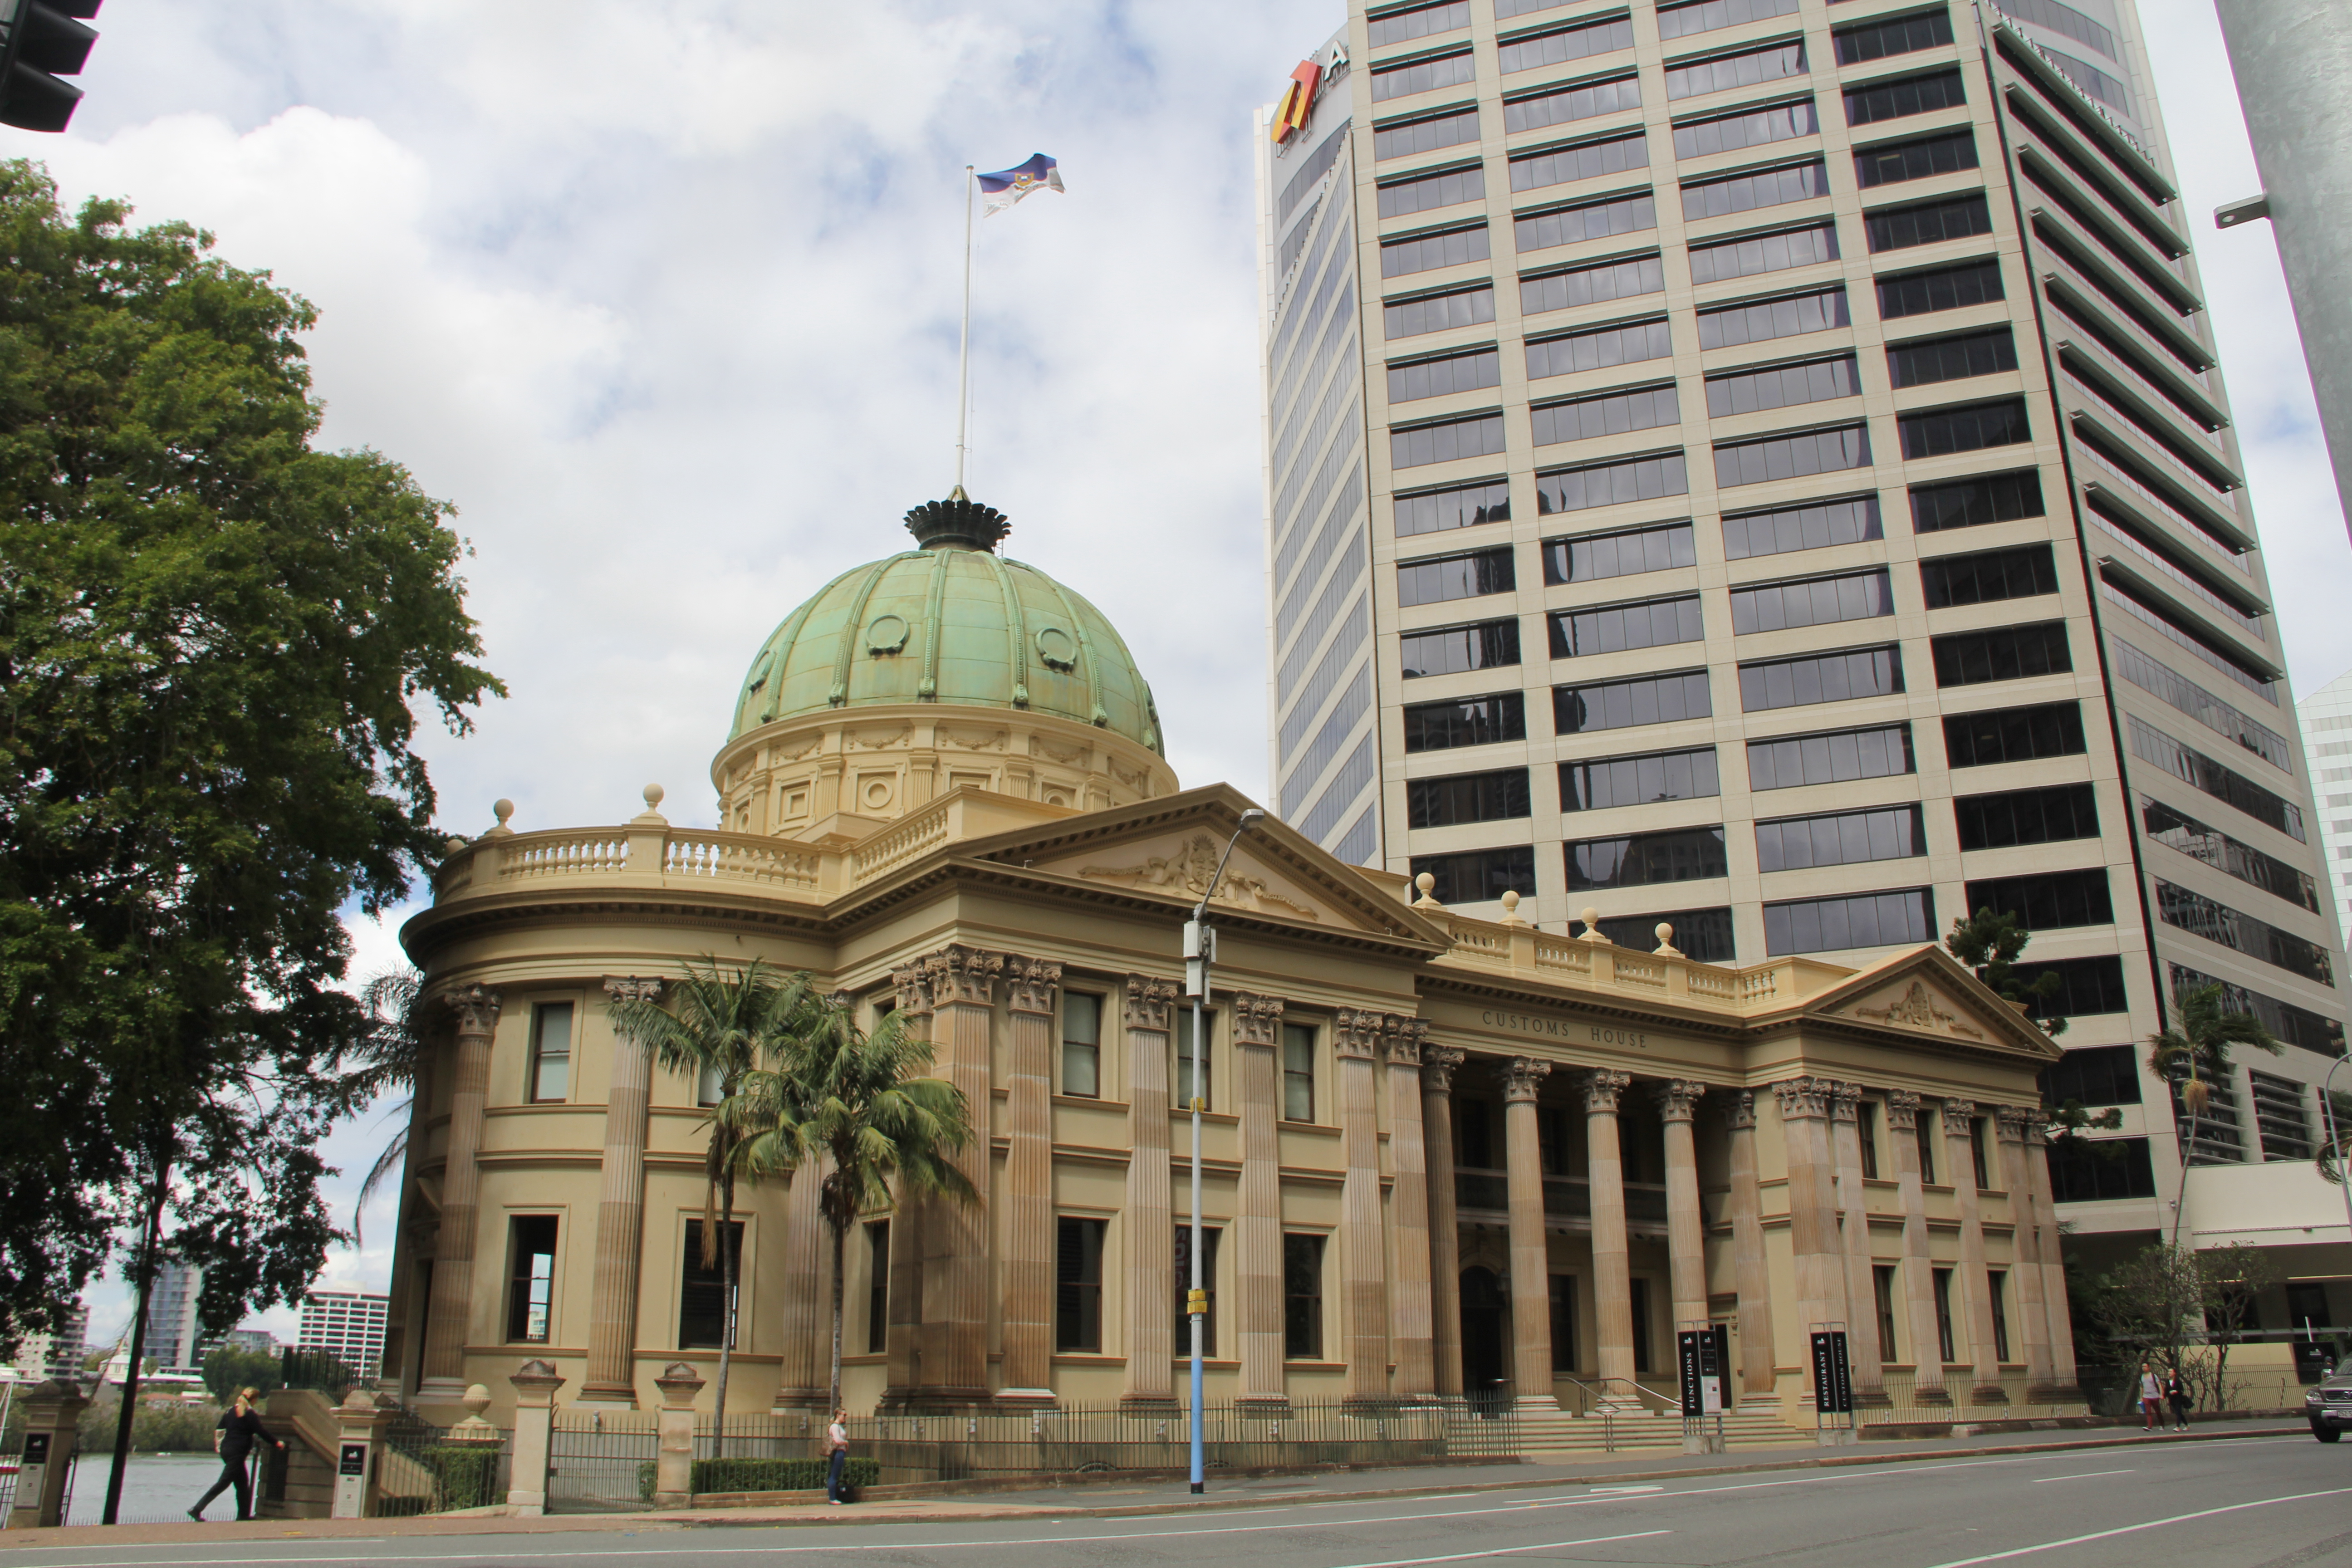 Brisbane Customs House